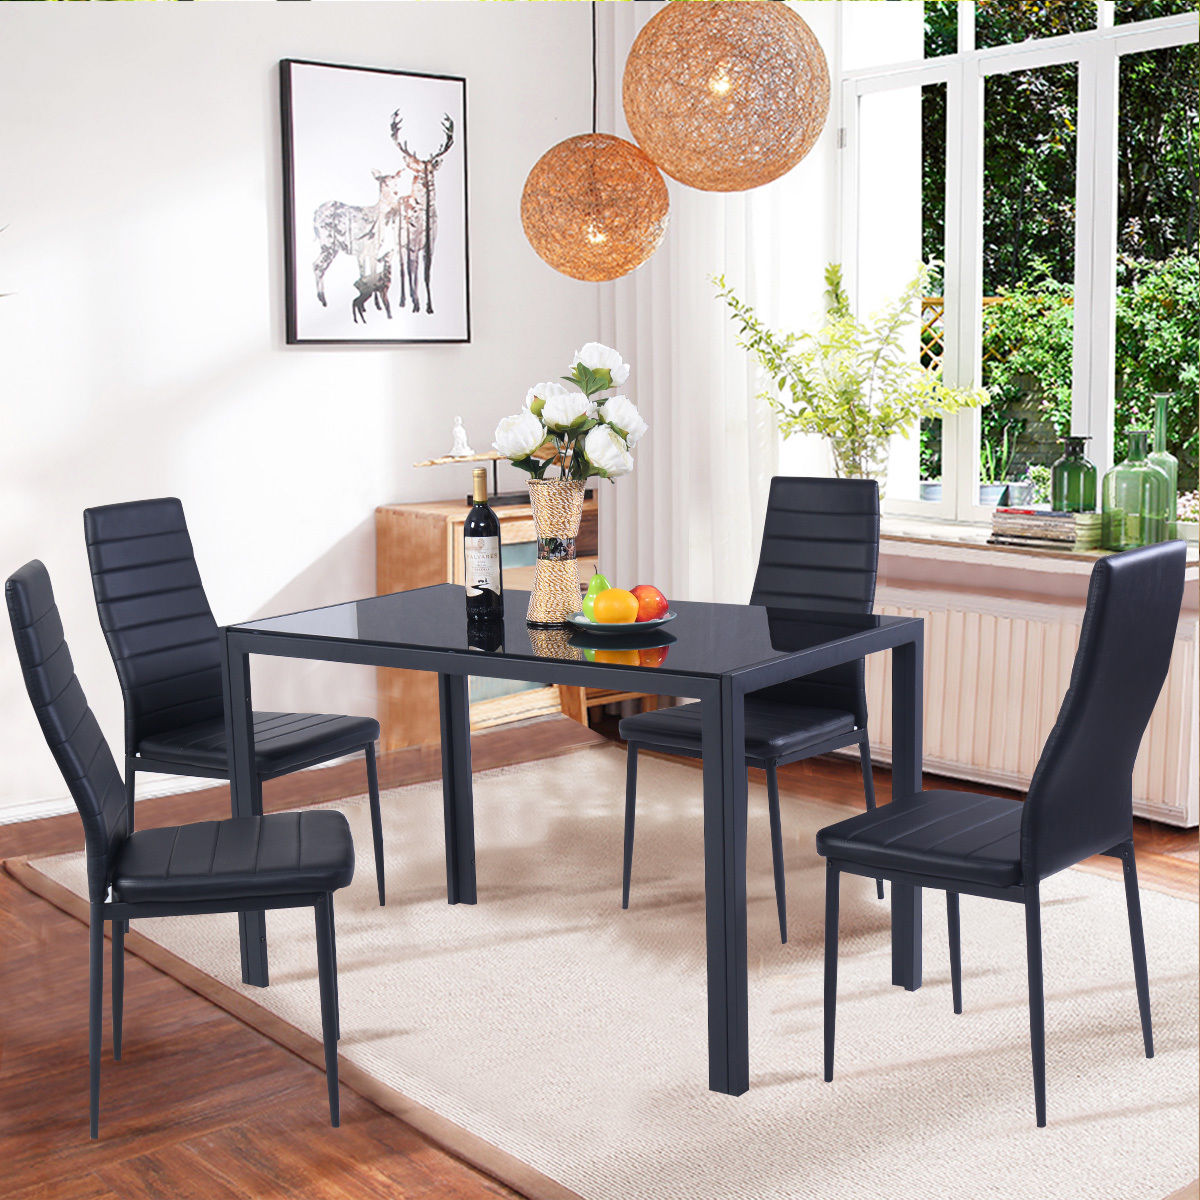 Costway 5 Piece Kitchen Dining Set Glass Metal Table and 4